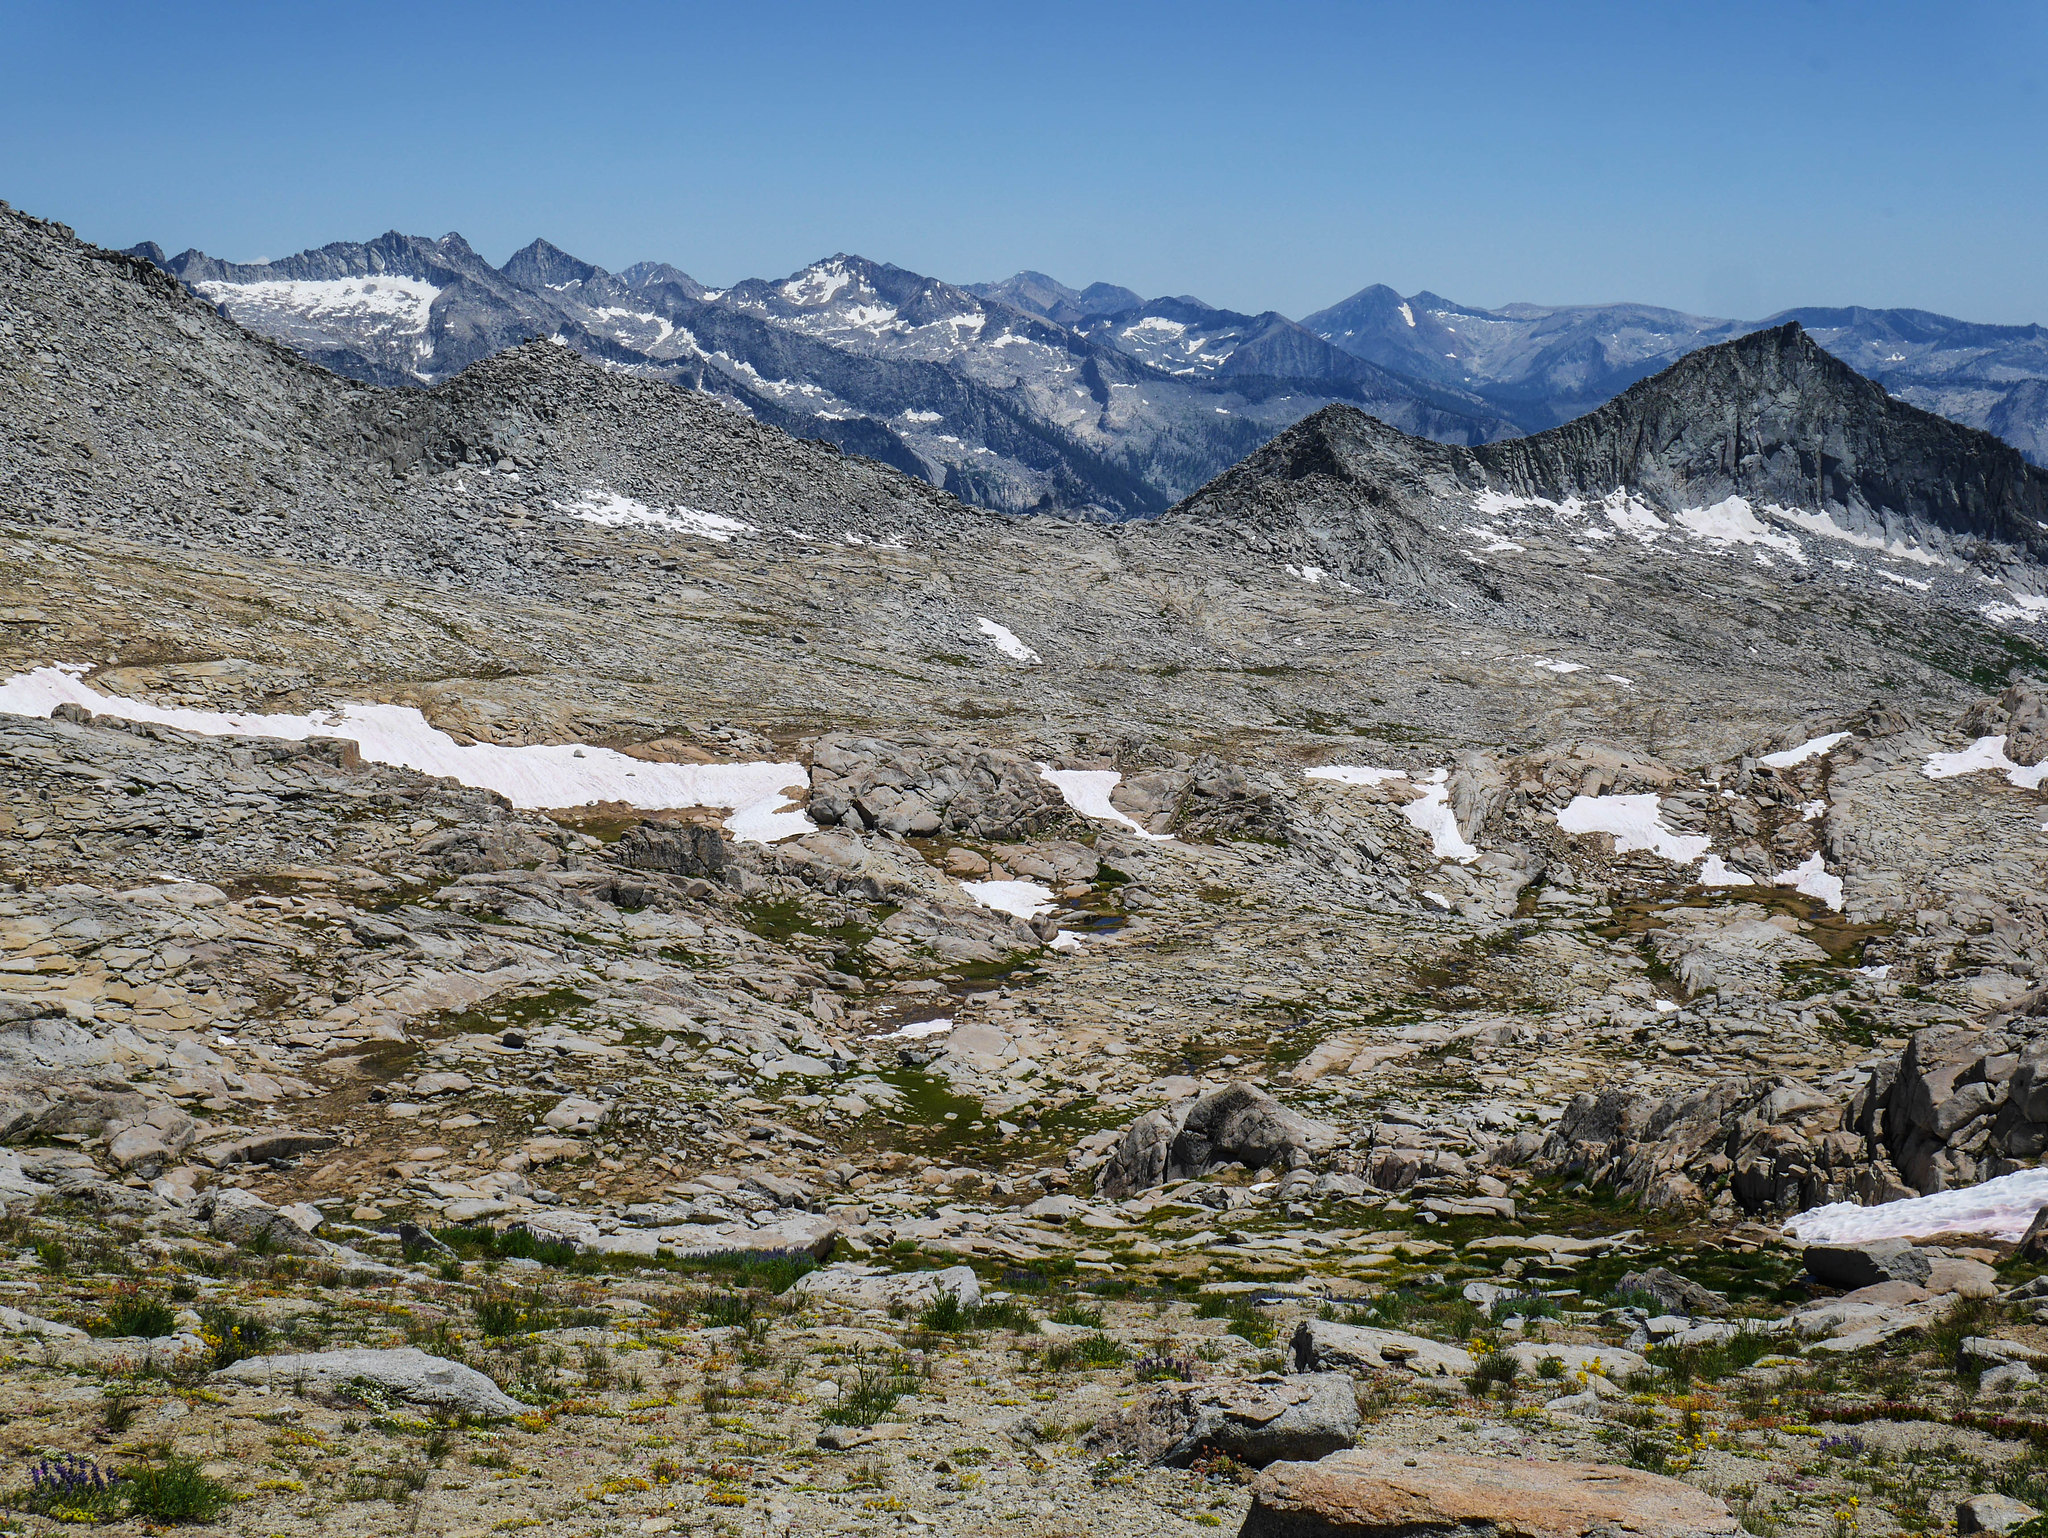 Looking back at Ptetrodactyl Pass from the ridgeline just NW of Big Bird Peak